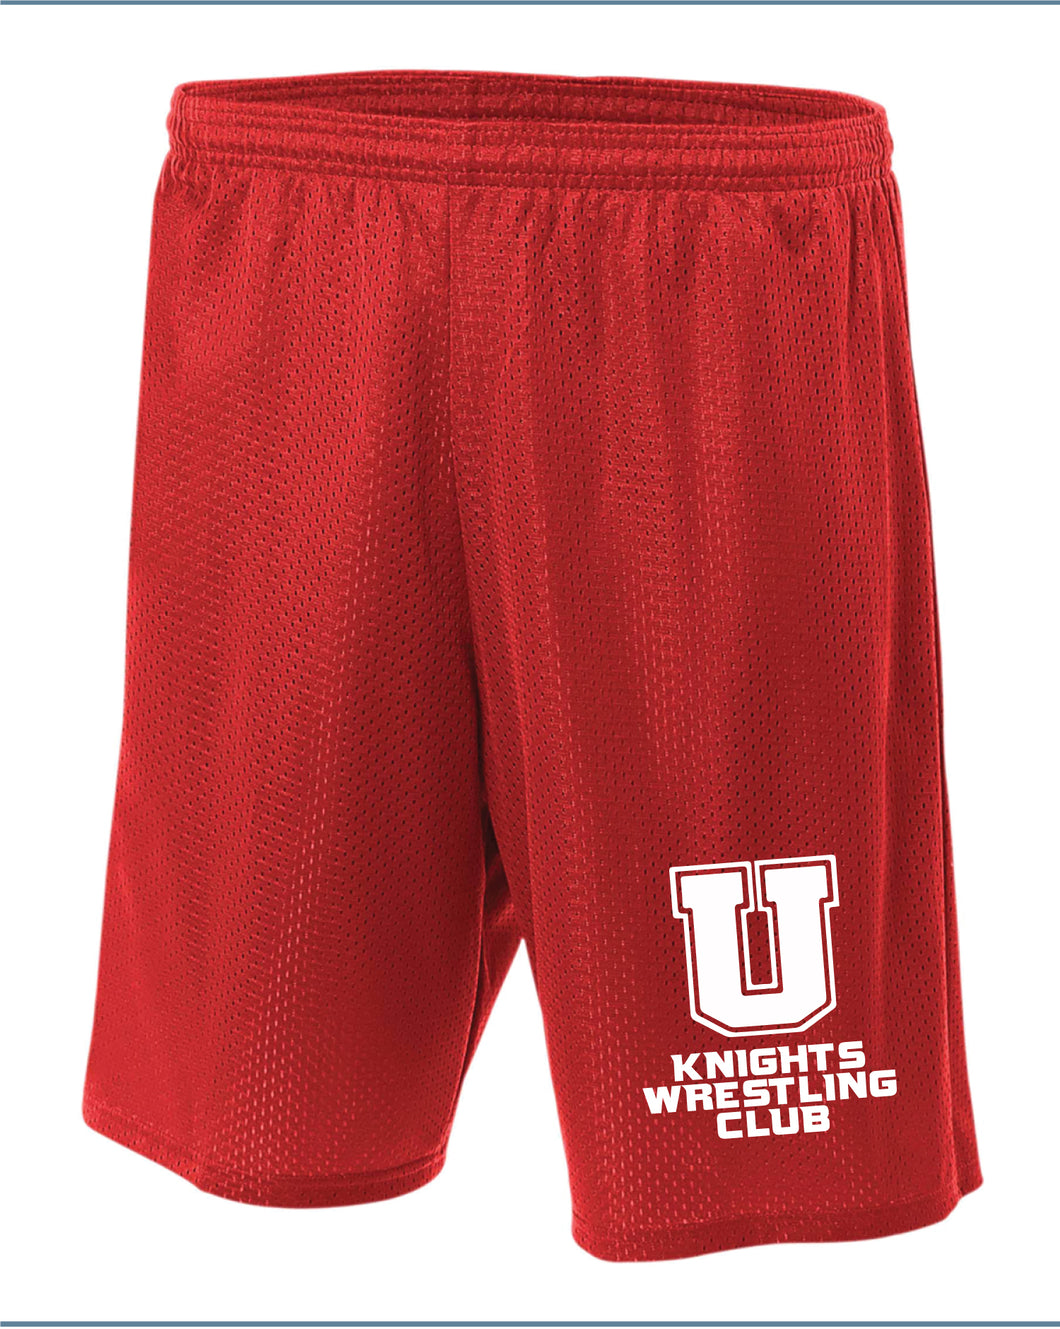 Union Knights Wrestling 2017 Tech Shorts